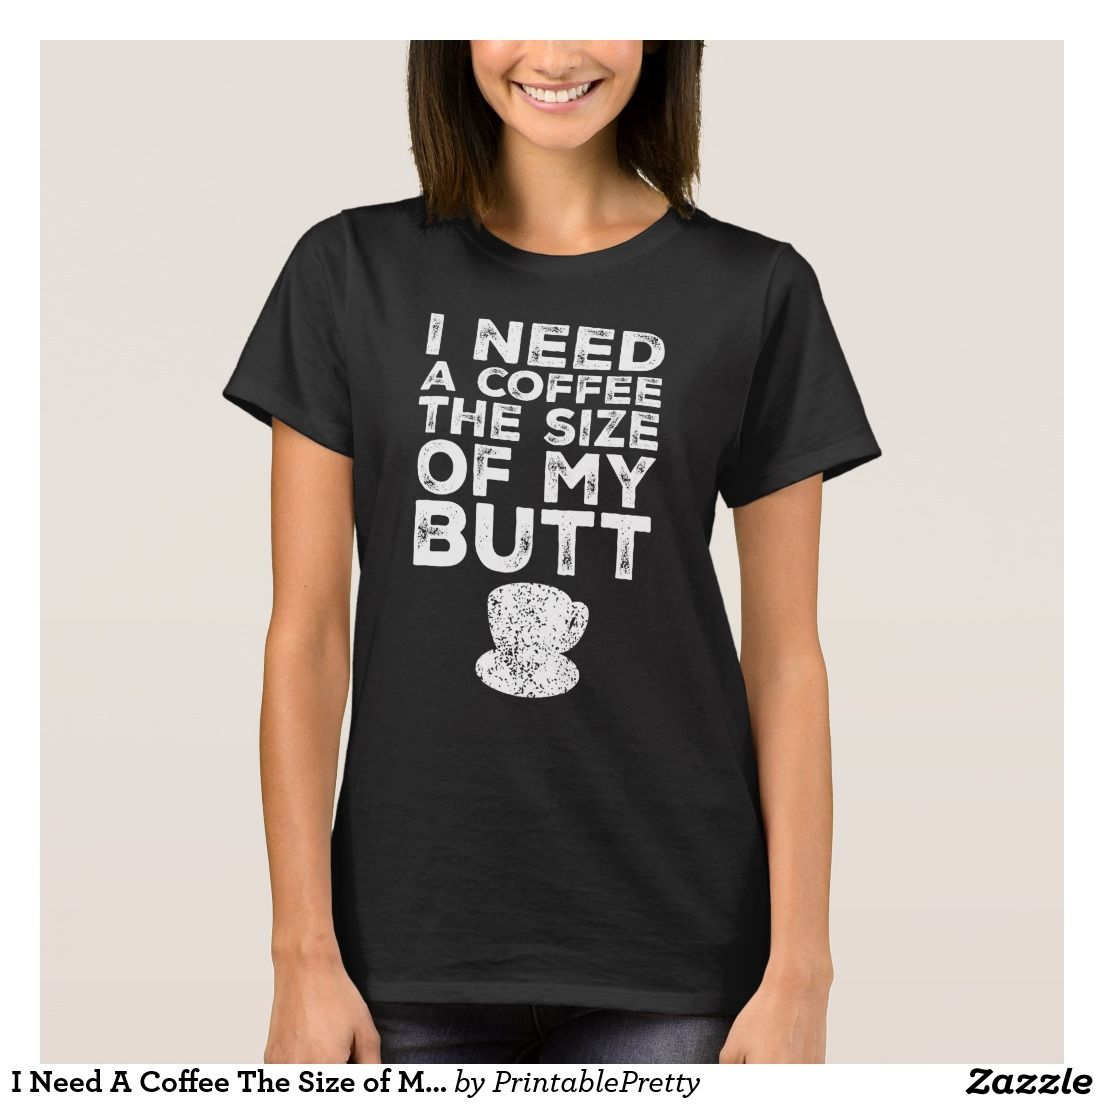 I need a coffee the size of my butt funny quote sayings graphic tee shirt design